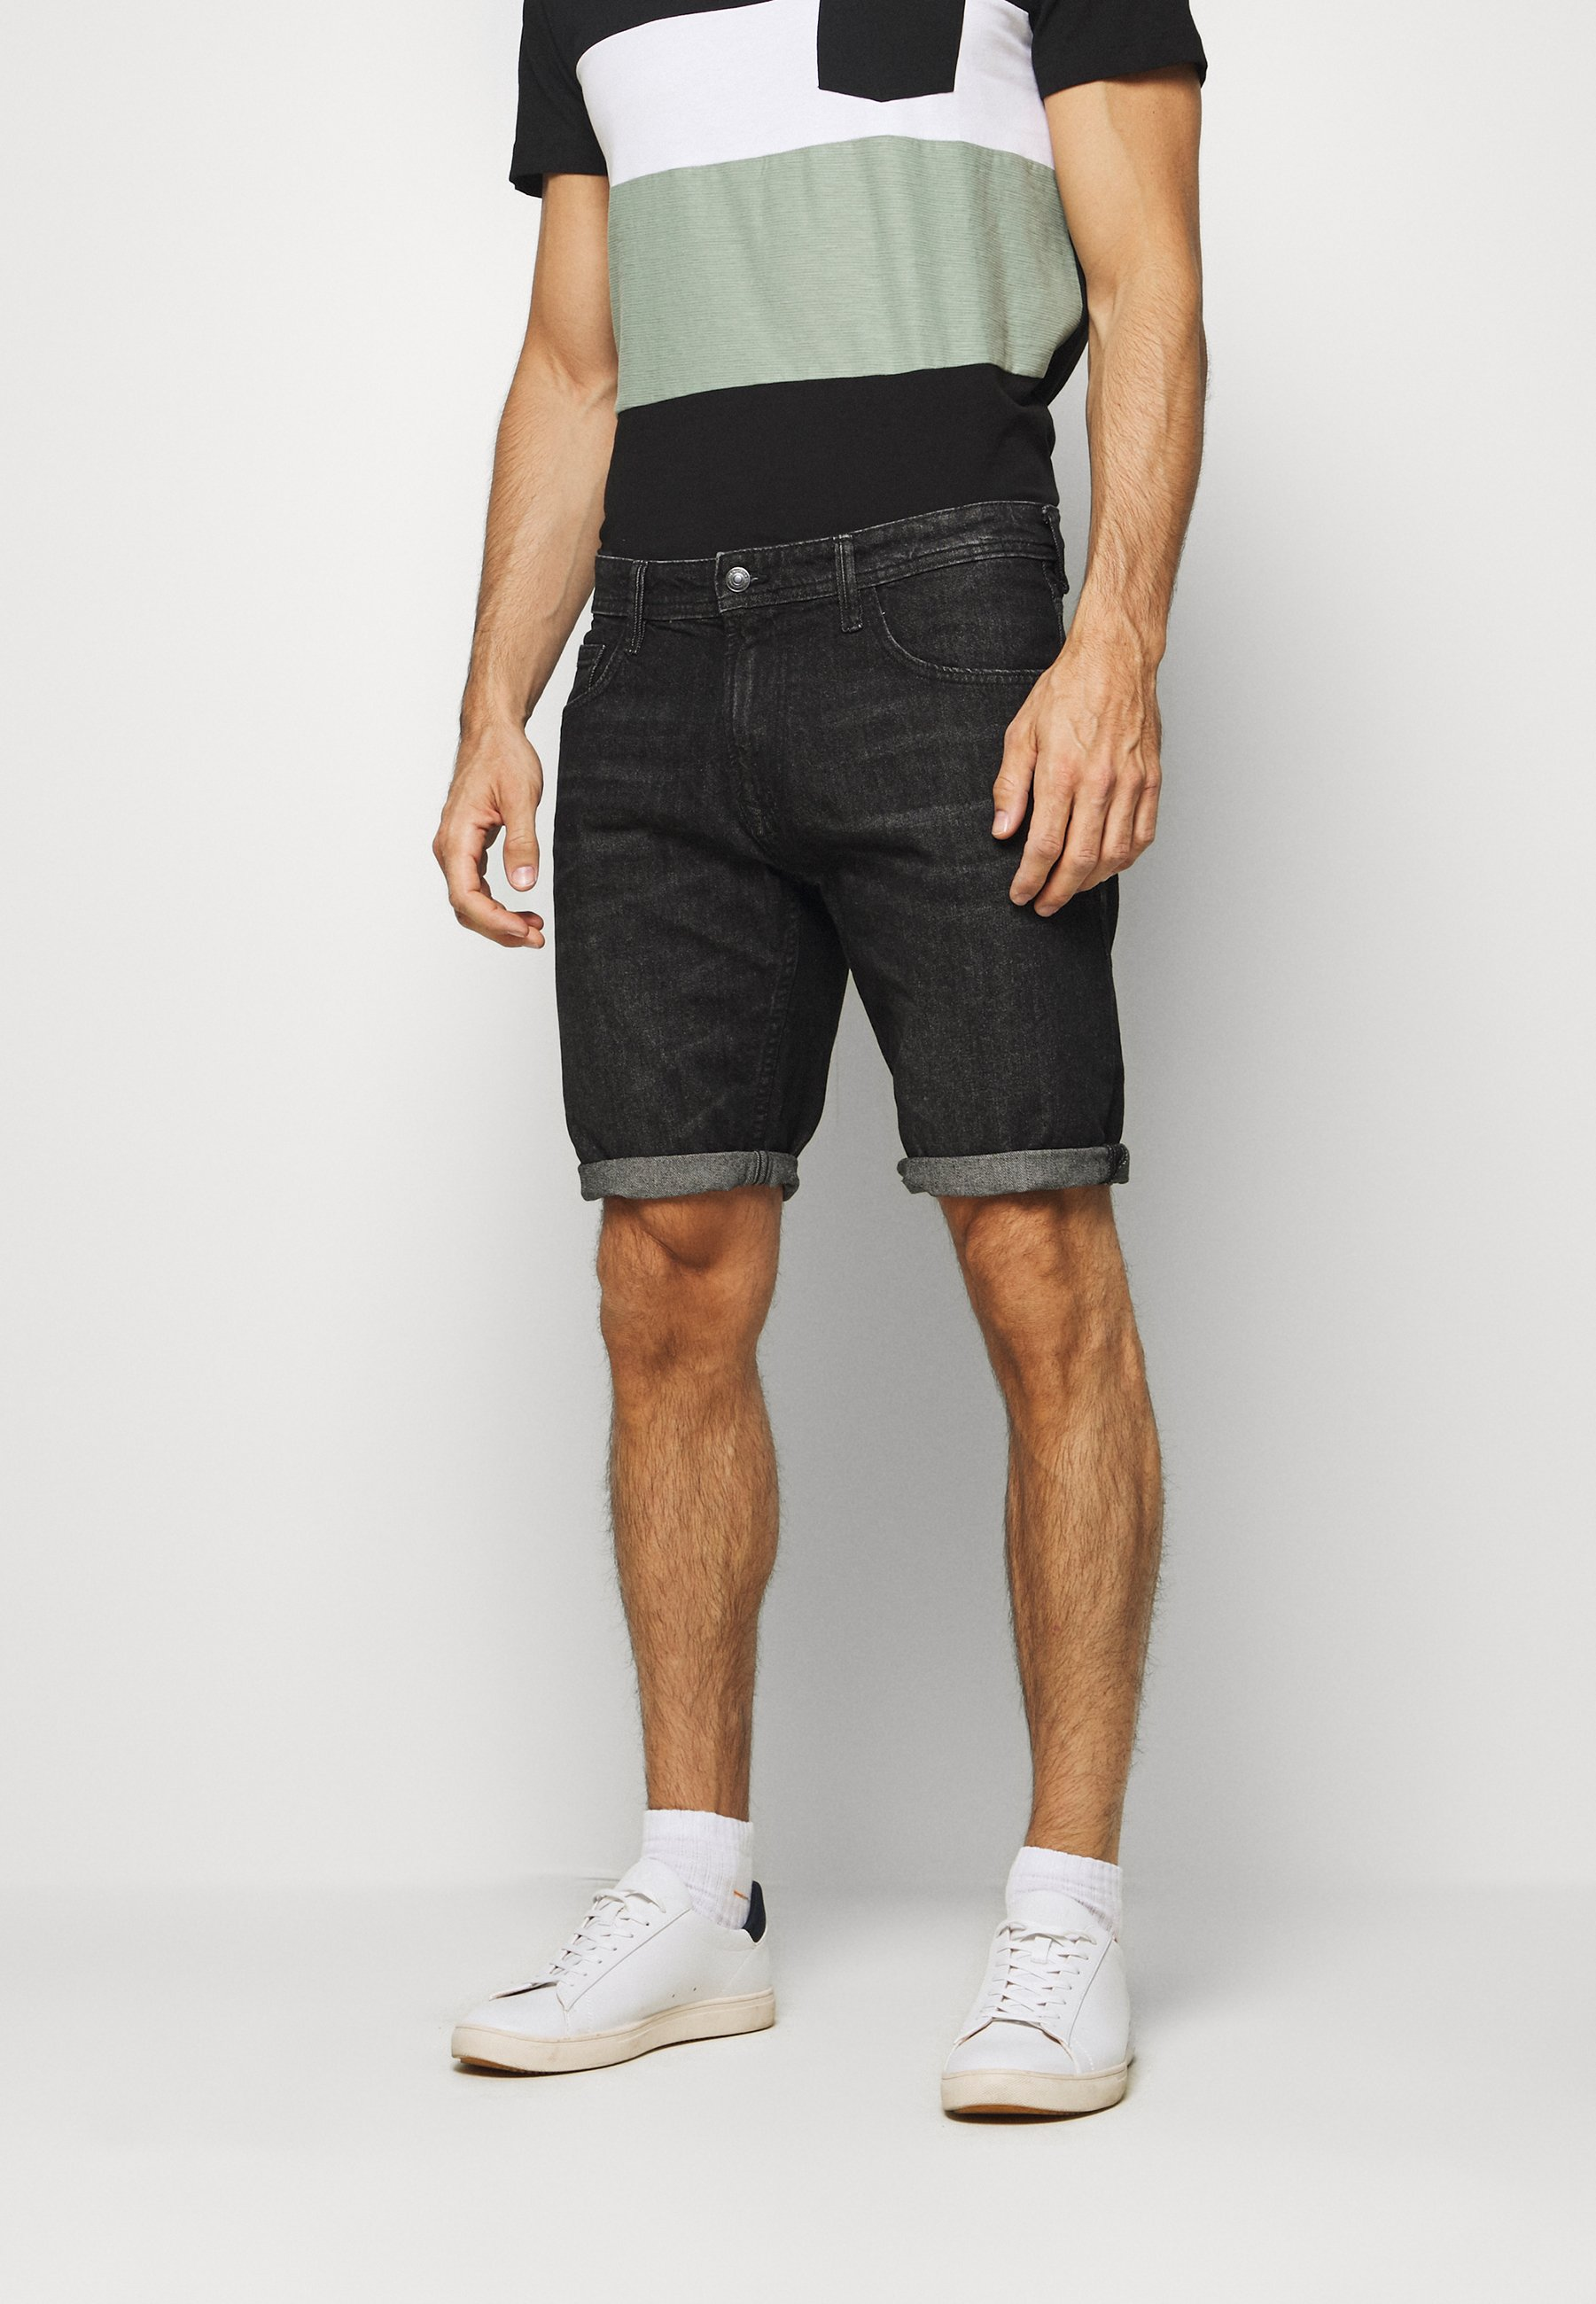 TOM TAILOR DENIM REGULAR FIT - Jeansshorts - dark stone wash denim